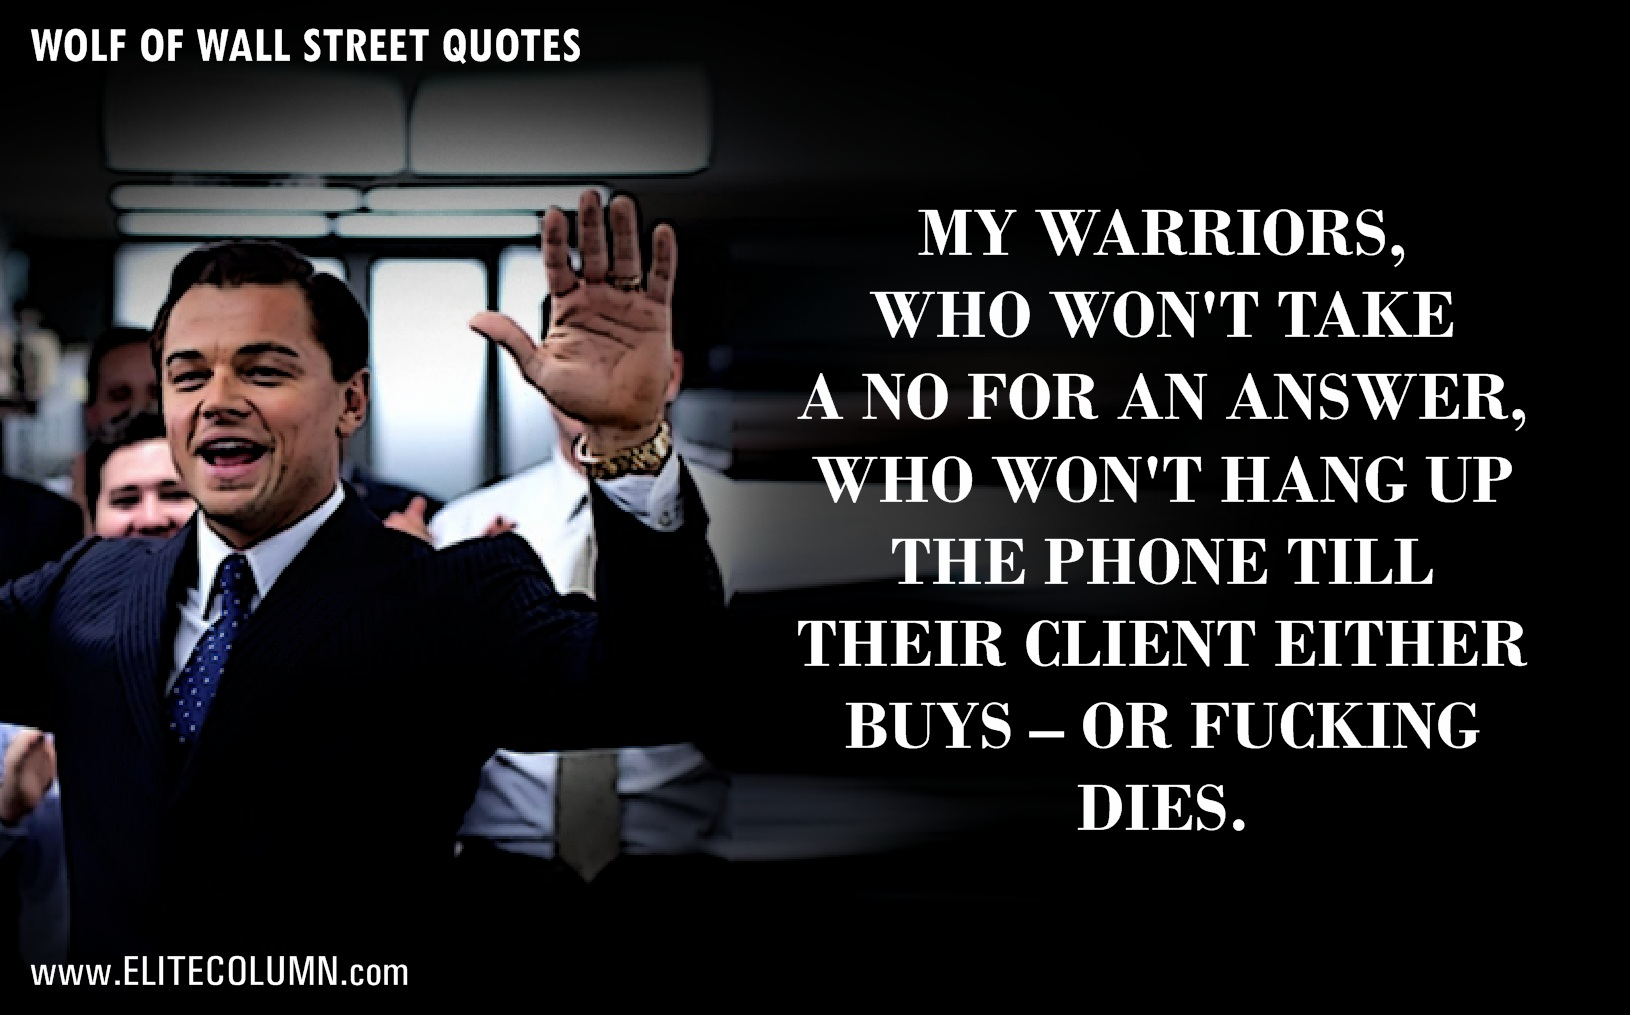 The Wolf Of Wall Street Quotes (8)